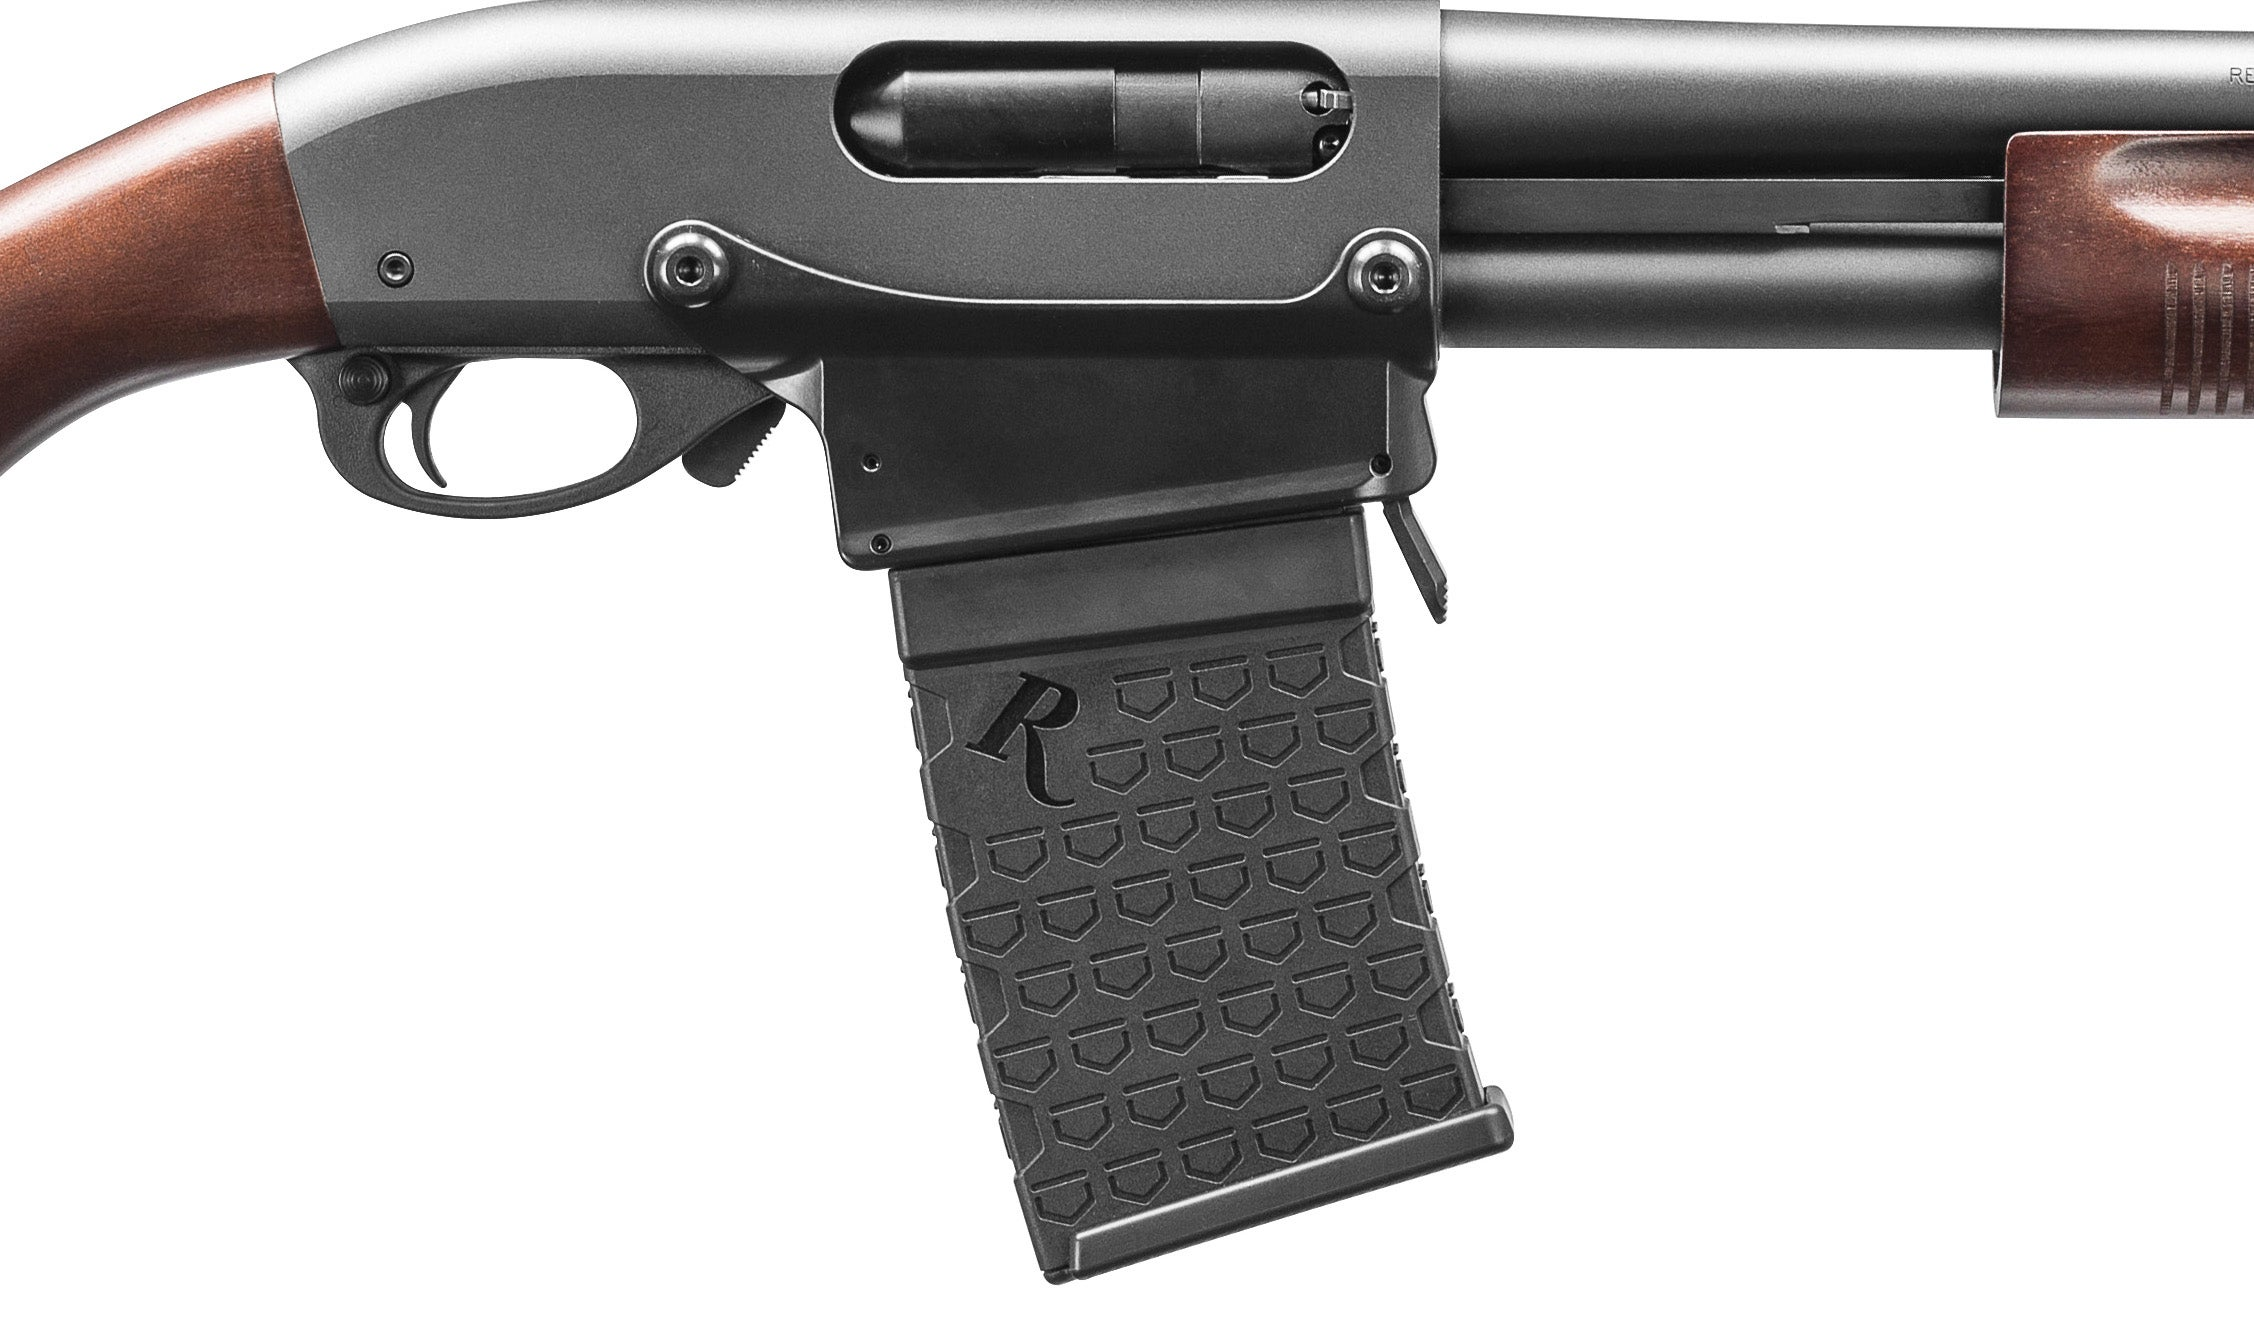 Remington Debuts 870 Shotgun with Box Magazine: Full Review and Range Test